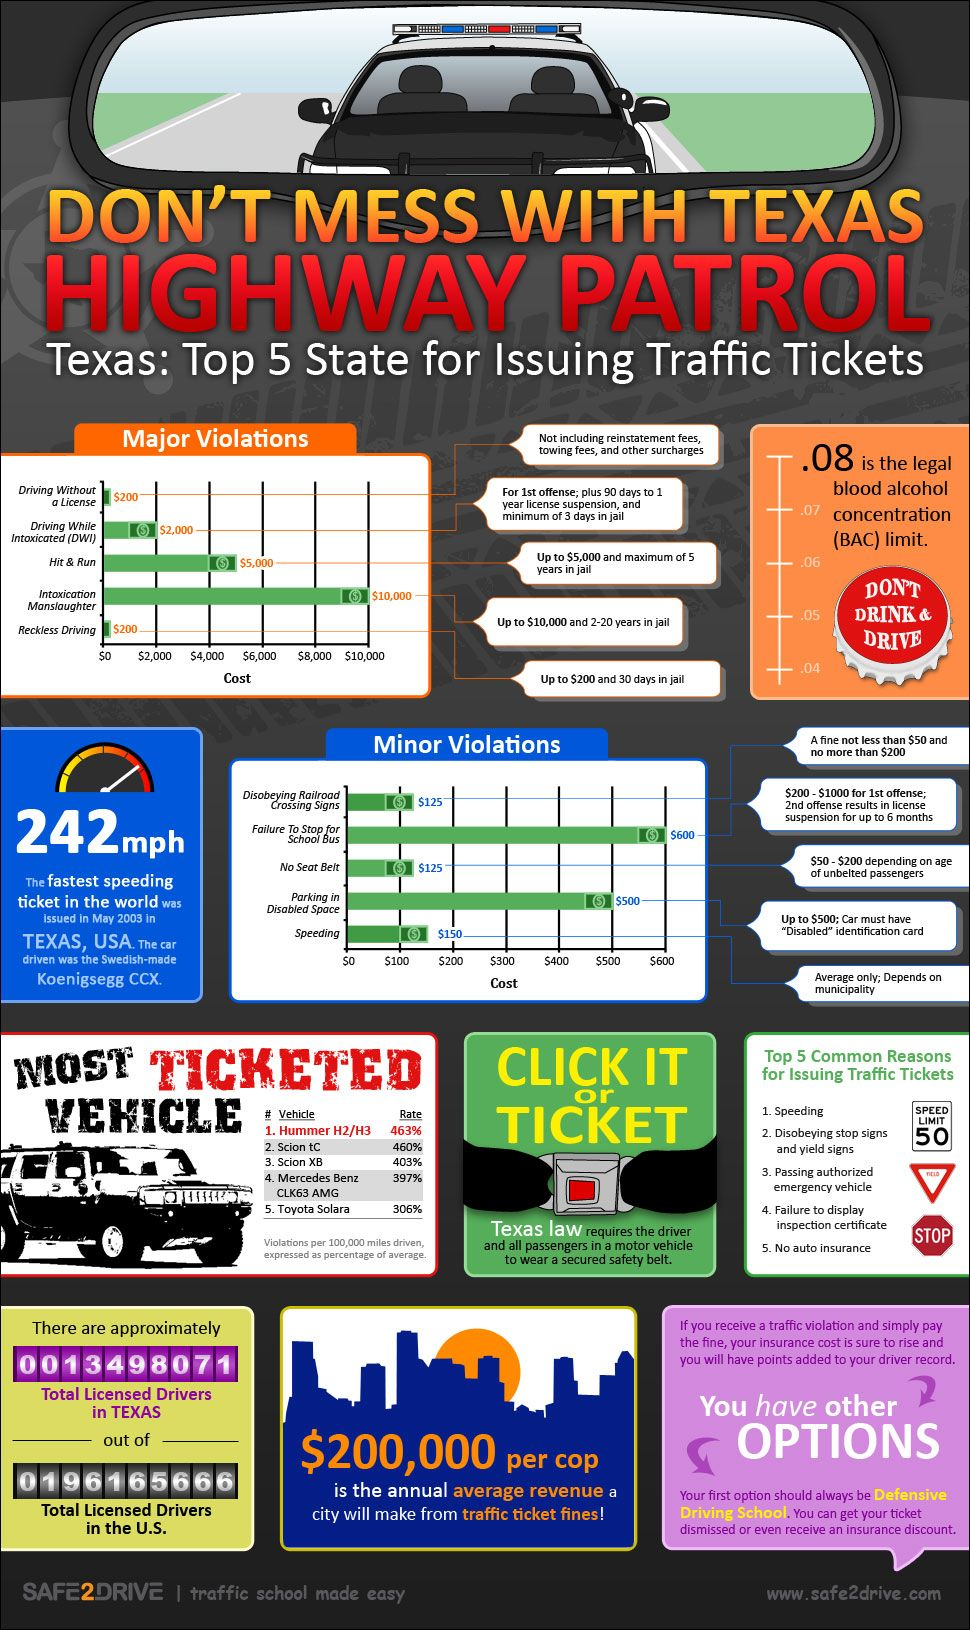 242 Mph The Fastest Speeding Ticket In The World Was Issue In May 2003 In Texas I Just Want To Know How The Tx Only In Texas Texas Texas State Trooper